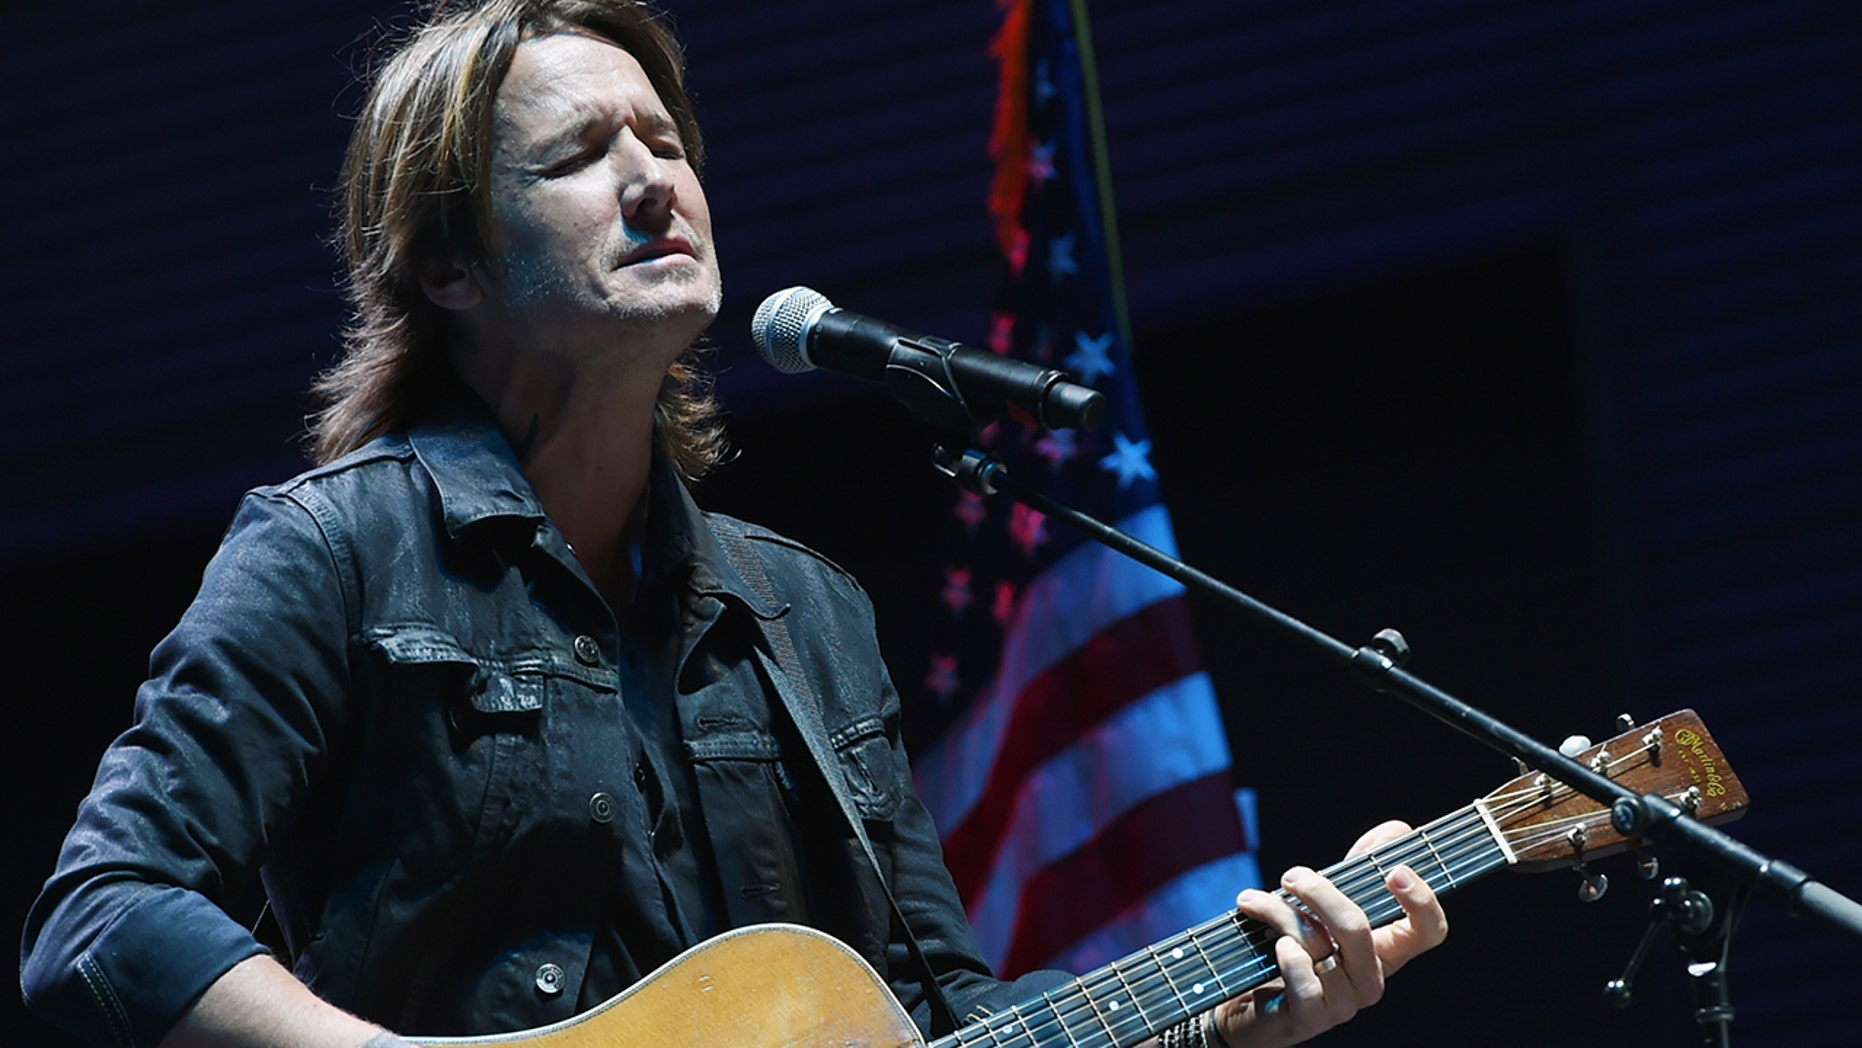 Keith Urban performs 'Bridge Over Troubled Water' during Nashville Candelight Vigil For Las Vegas at Ascend Amphitheater on October 2, 2017 in Nashville, Tennessee.